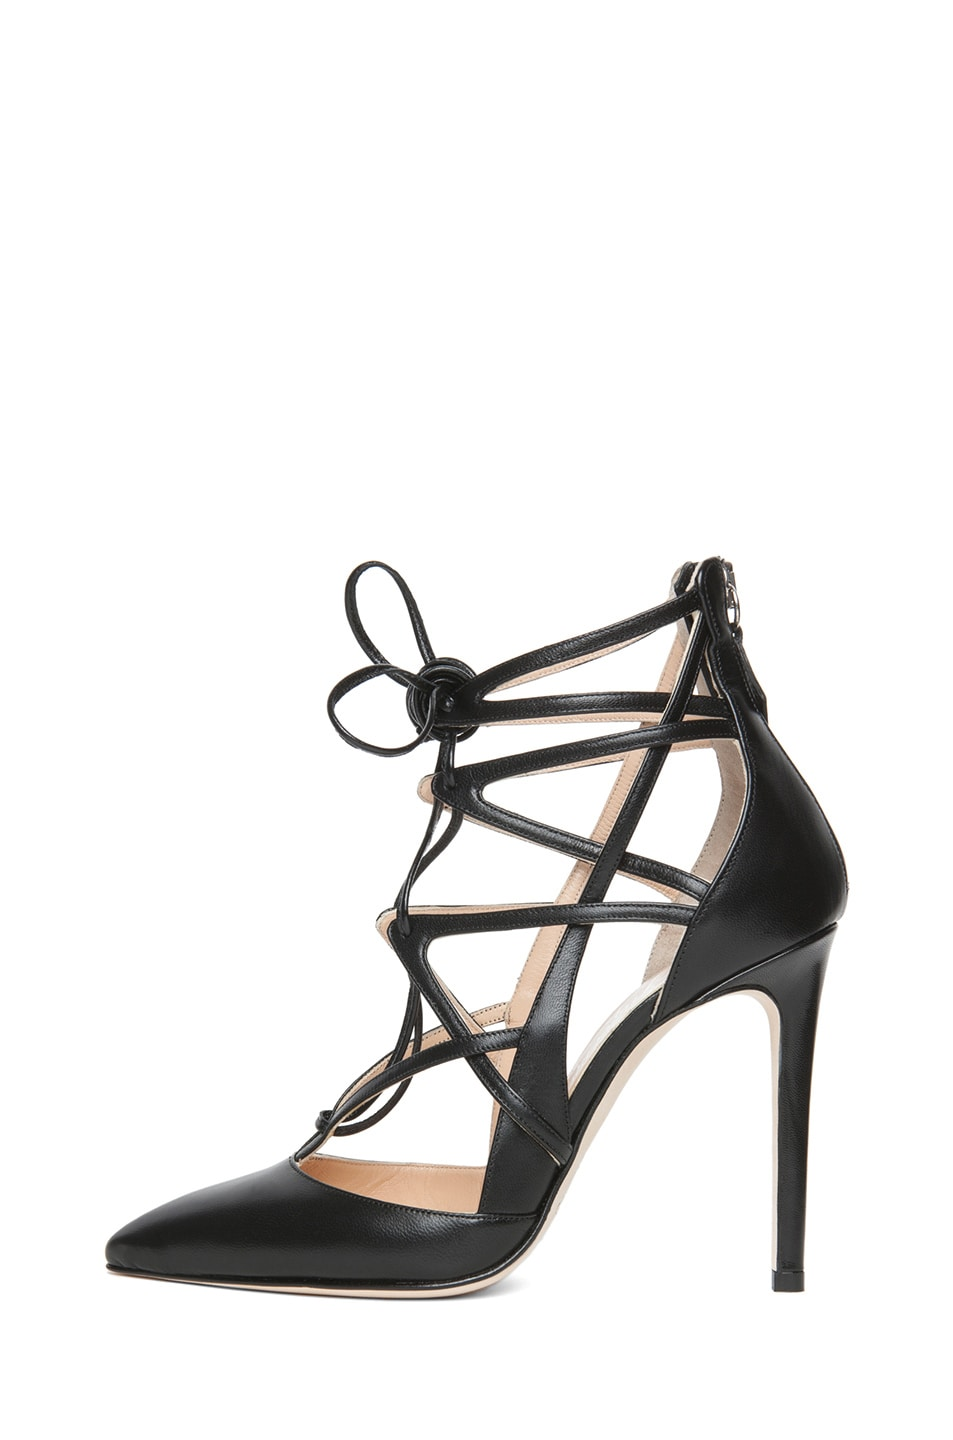 Image 1 of Alejandro Ingelmo Boomerang Calfskin Leather Lace Up Pump in Black